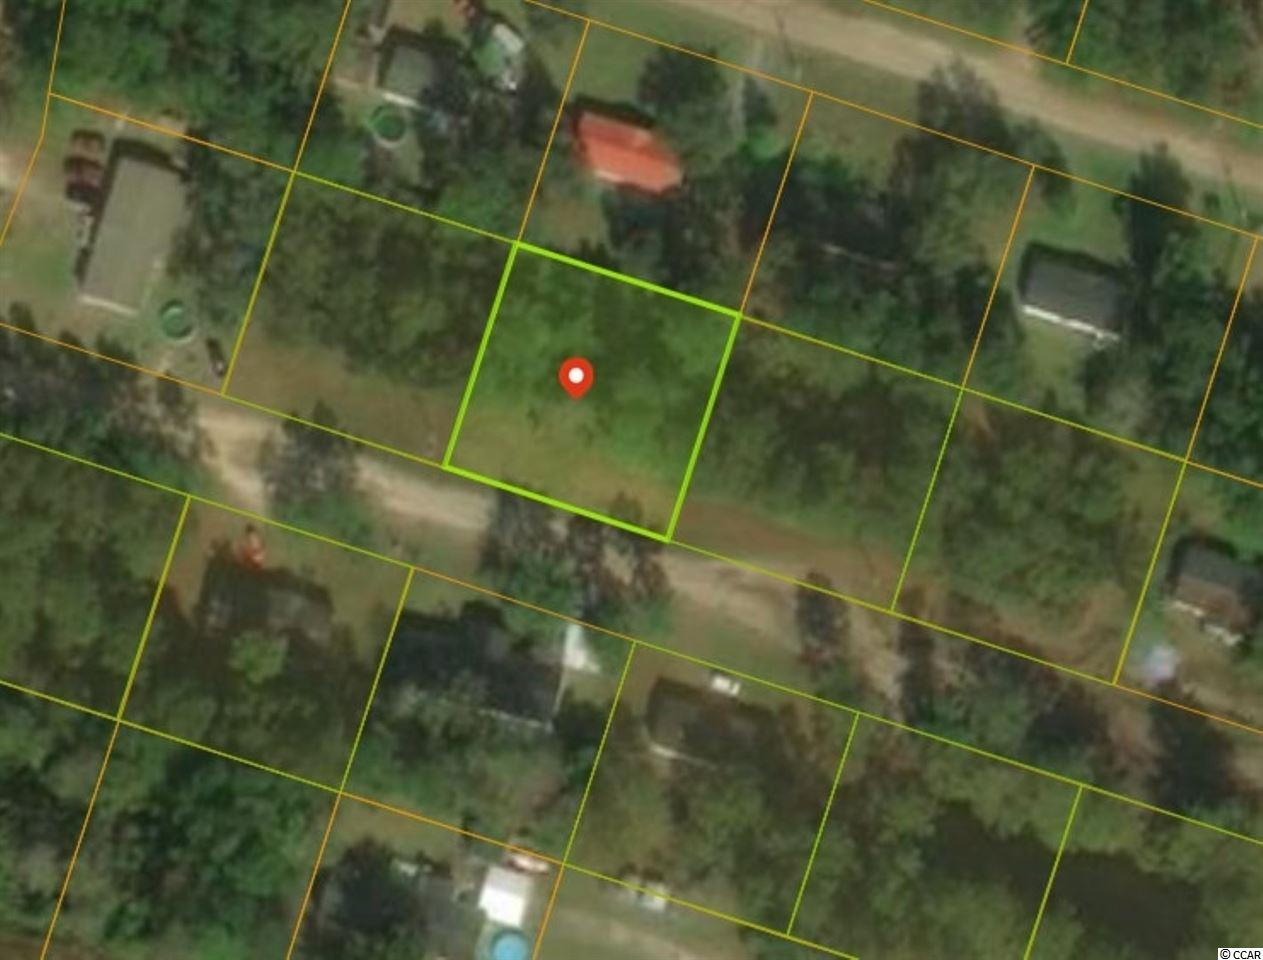 This property includes 11 lots, .29 acres each, within the Greenwood Estates mobile home community in Conway with NO HOA. 3 of the lots have mobile homes on the property (sold with the property in As Is condition). This is a great opportunity to own multiple lots with great rental potential for an amazing price. Ask your agent to provide the Lot List and Lot Map documents that are available. The Greewood Estates community allows living with country charm, while only a short drive to downtown Conway or all the beautiful beaches, shopping, dining and entertainment of the Grand Strand.